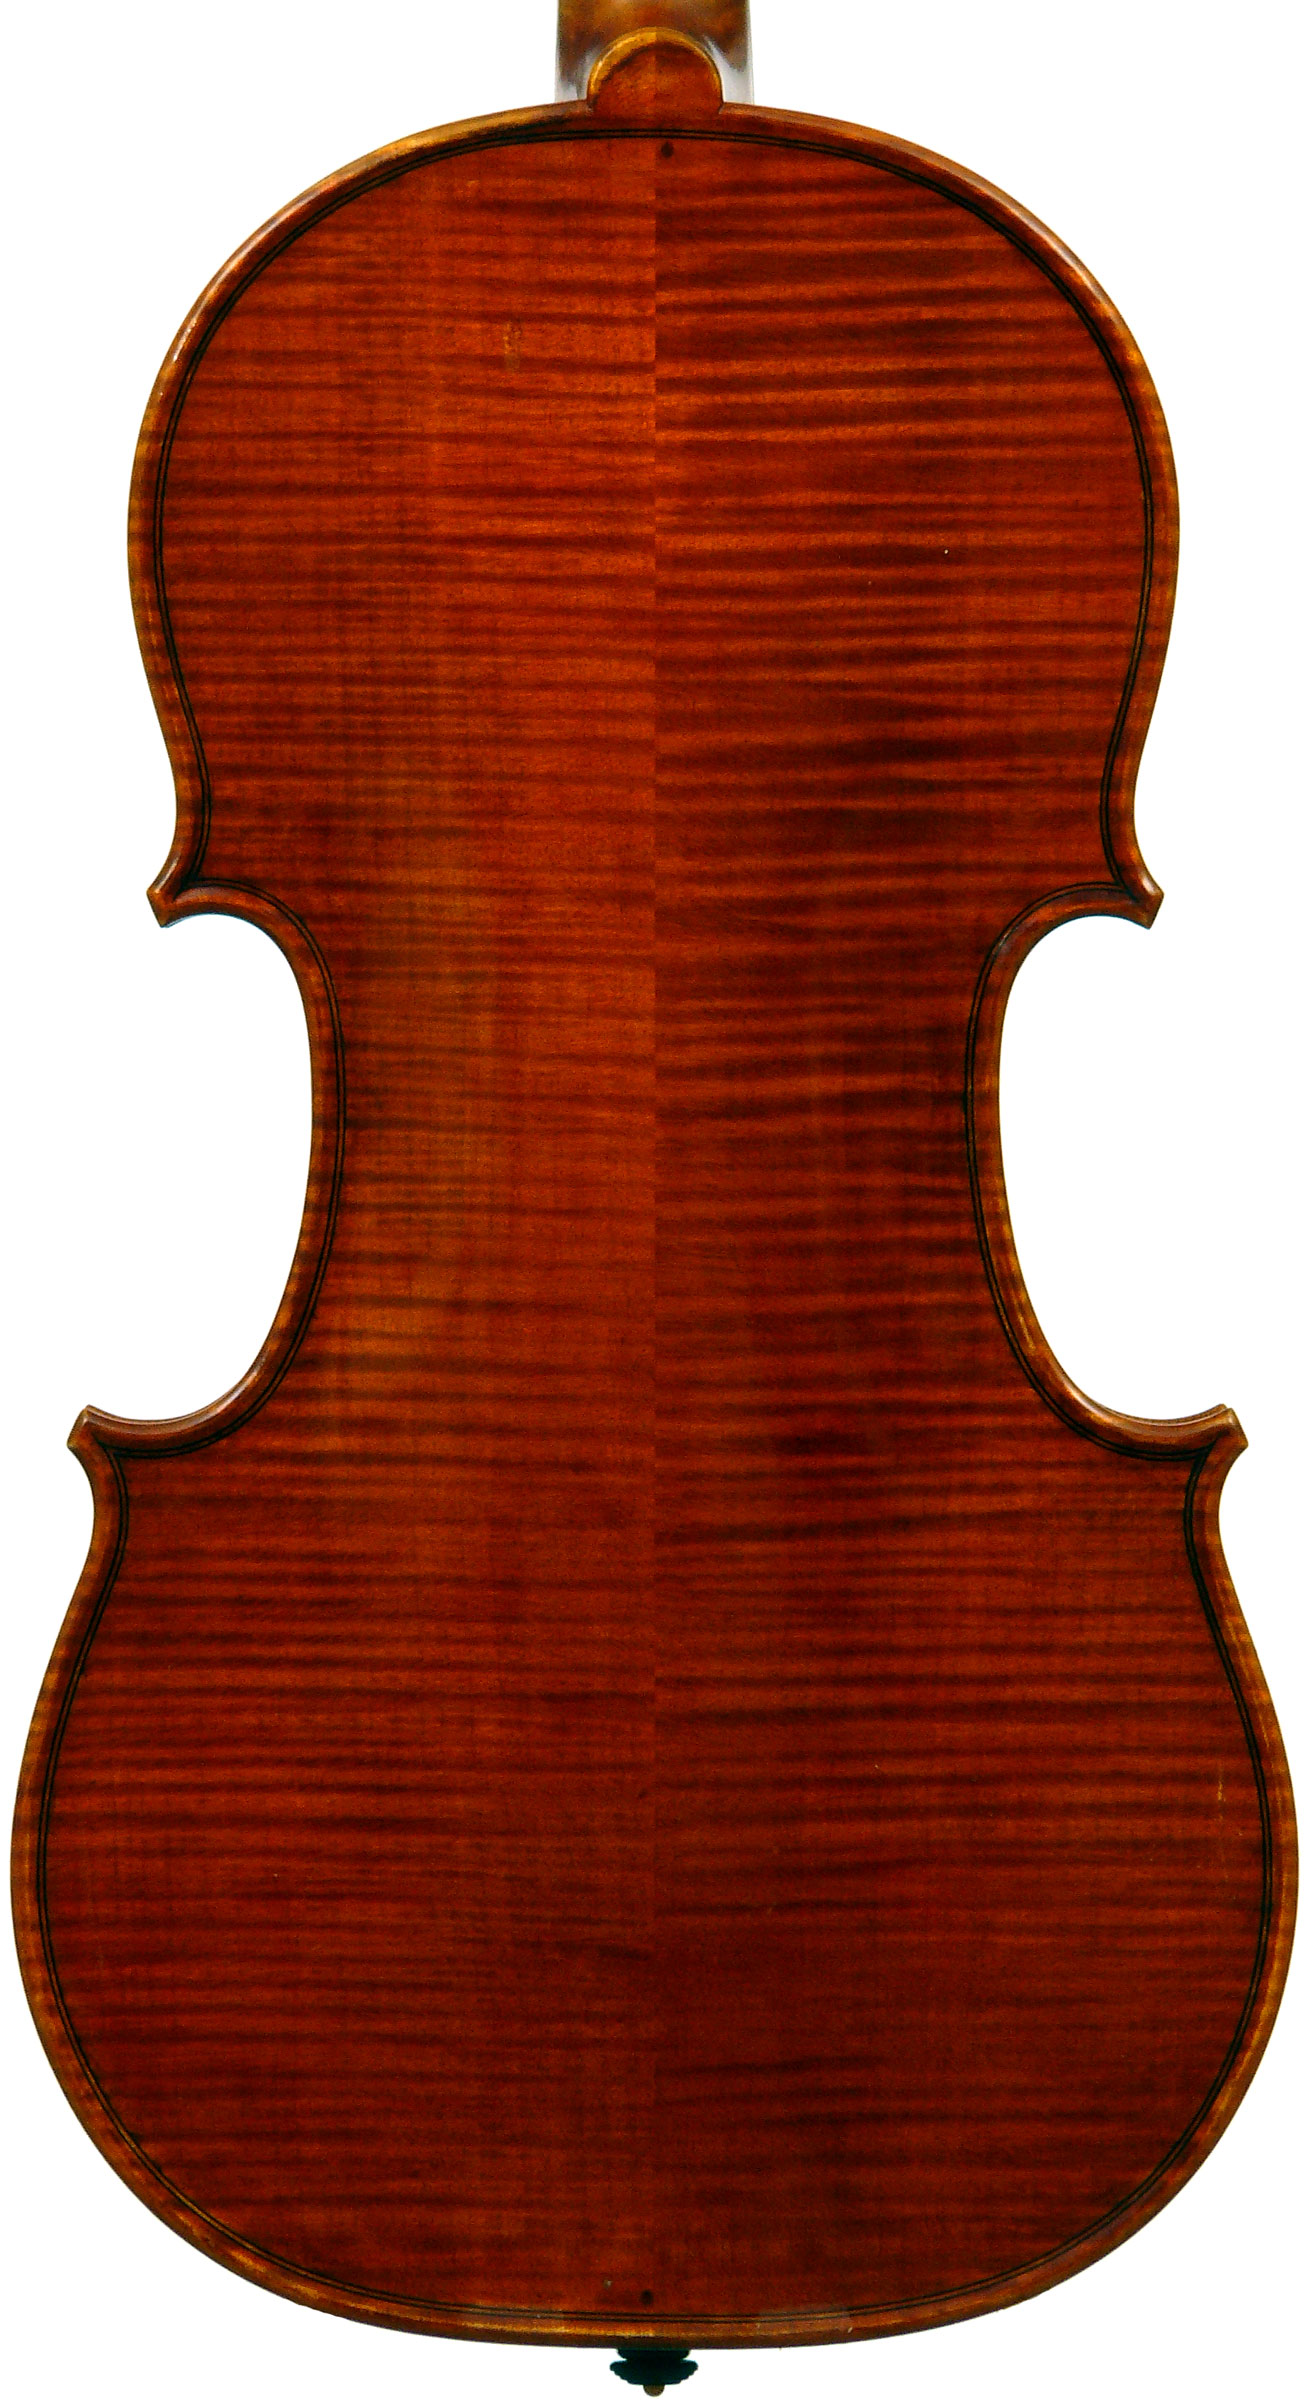 violins on sale mitio dimitrov the violin connection of southern africa. Black Bedroom Furniture Sets. Home Design Ideas